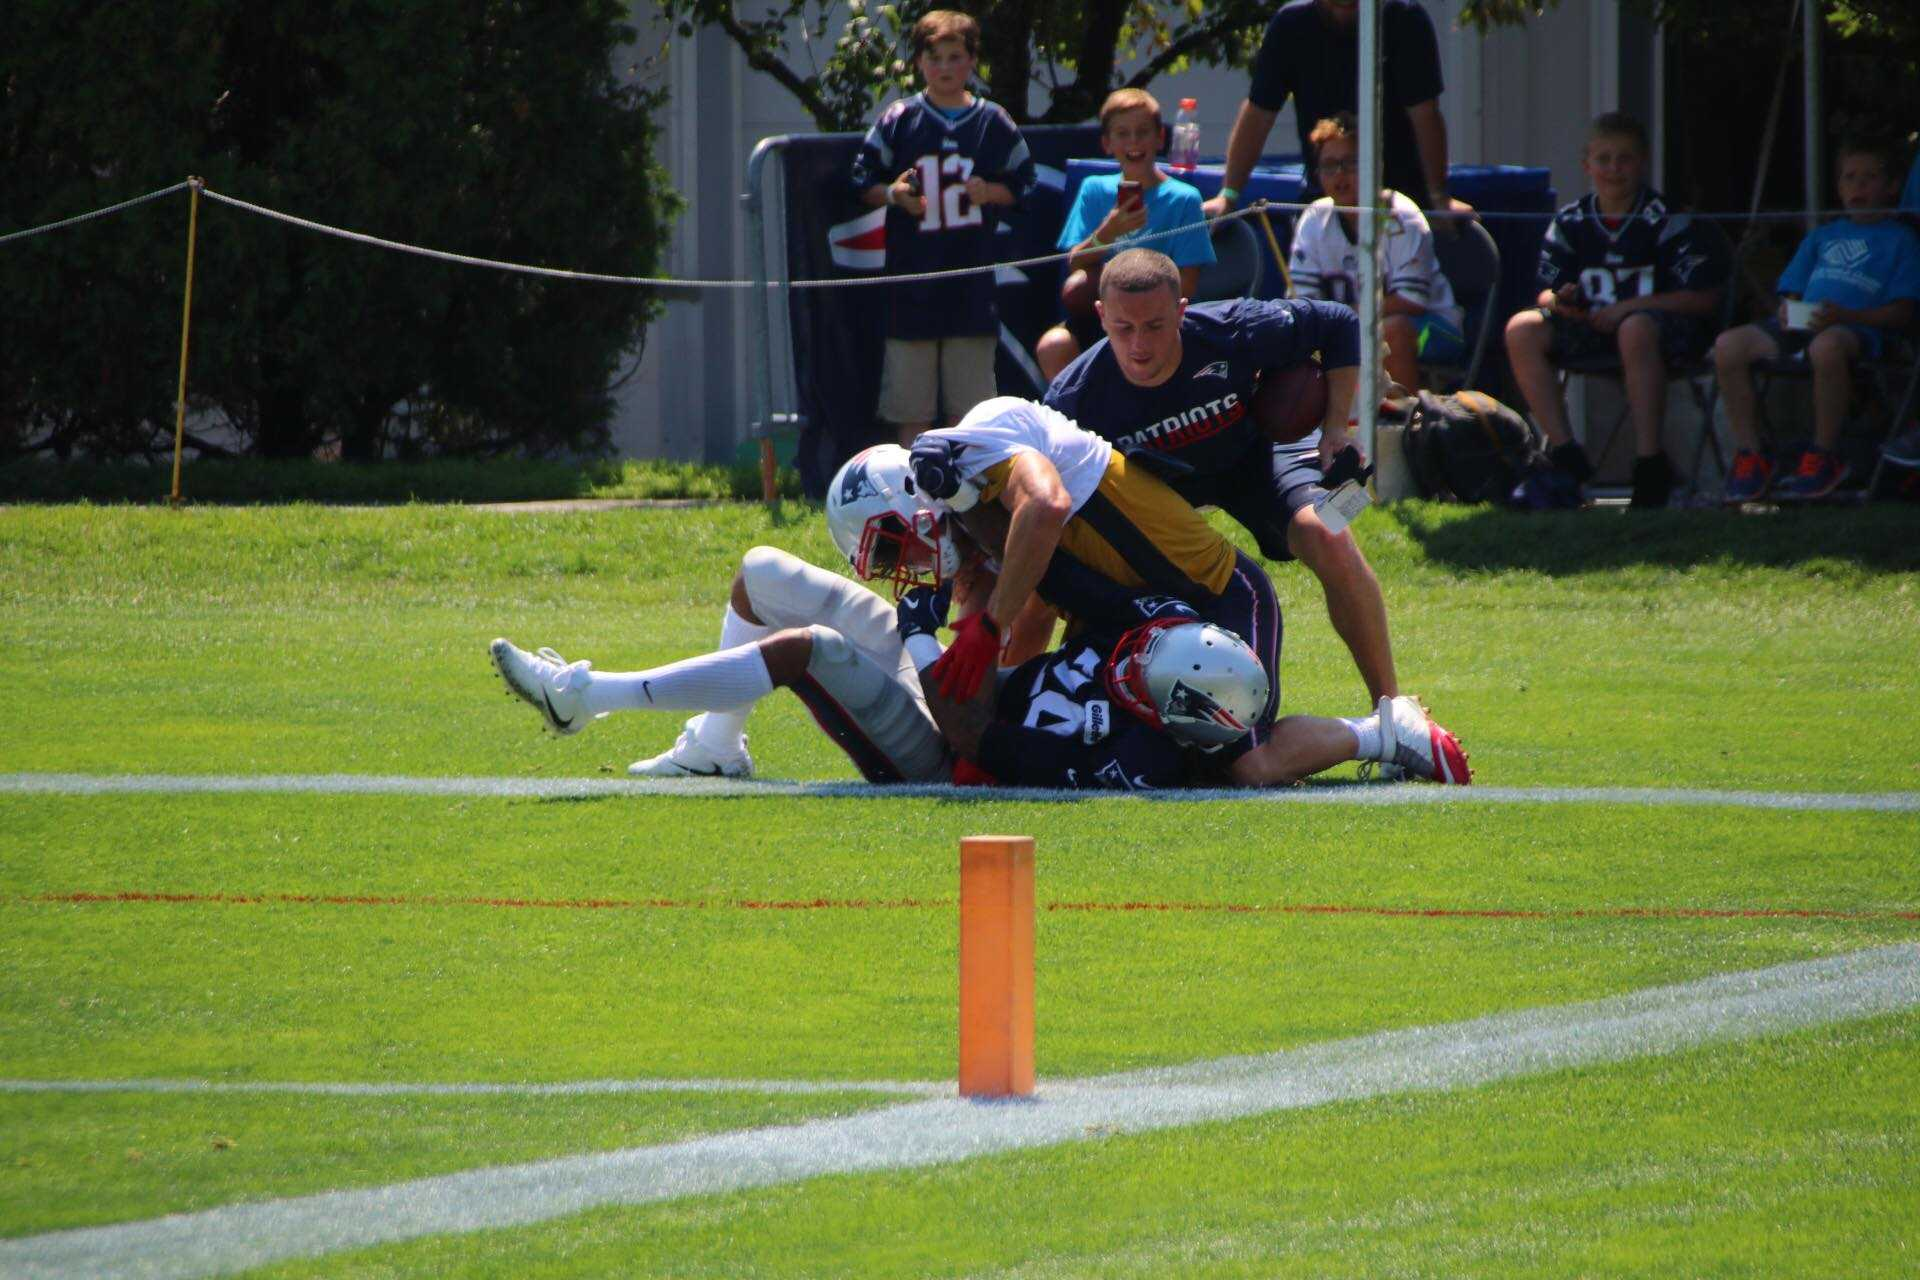 Julian Edelman, Stephon Gilmore tossed from practice after tussle